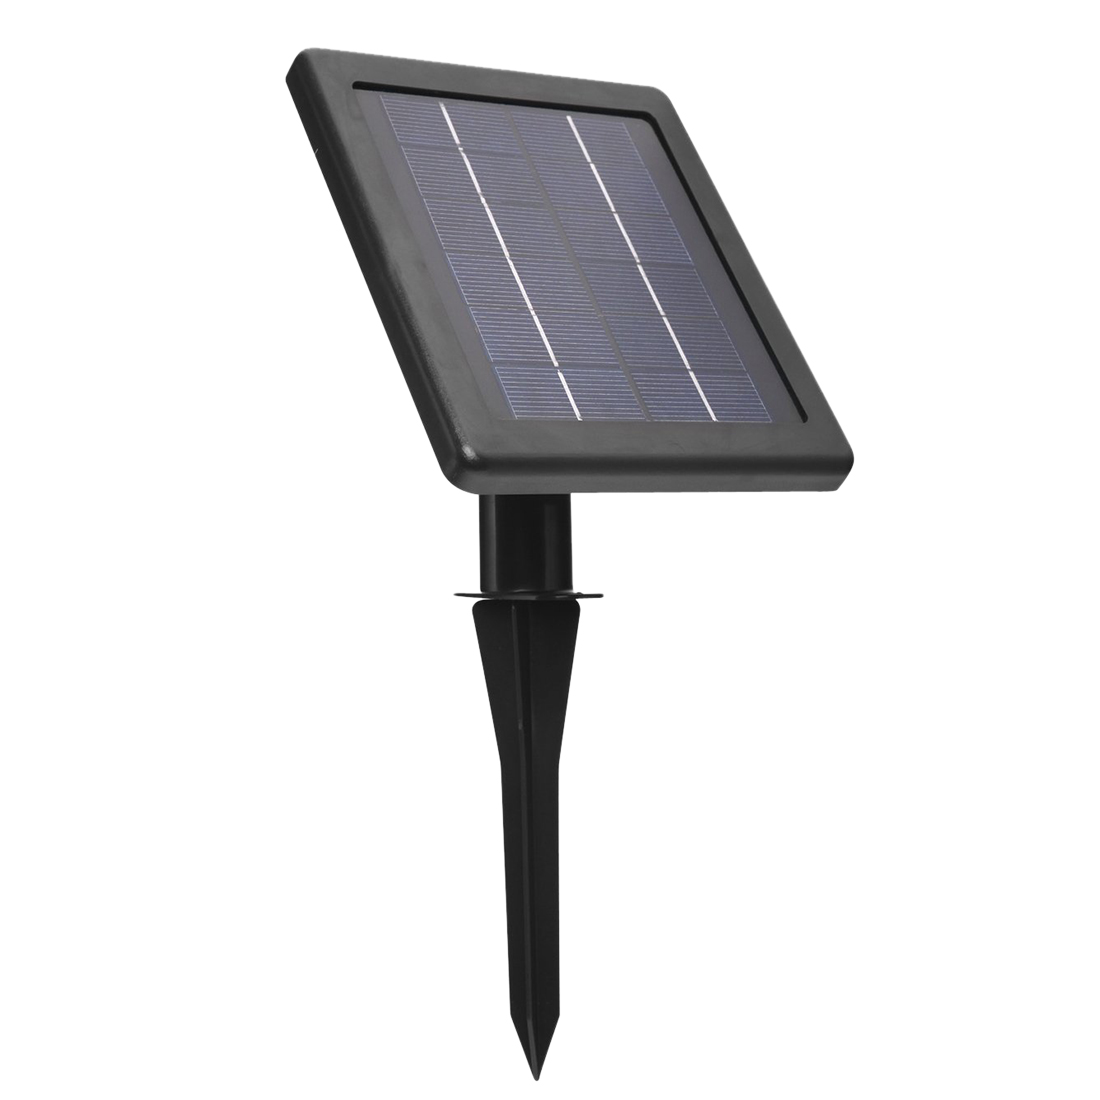 Rechargeable Waterproof Solar Powered 30 LED Spot Light White Lamp with Lithium Battery Inside for Lawn, Garden, Road Hotel etc. solar powered self recharged led white light lawn lamp 1 aa